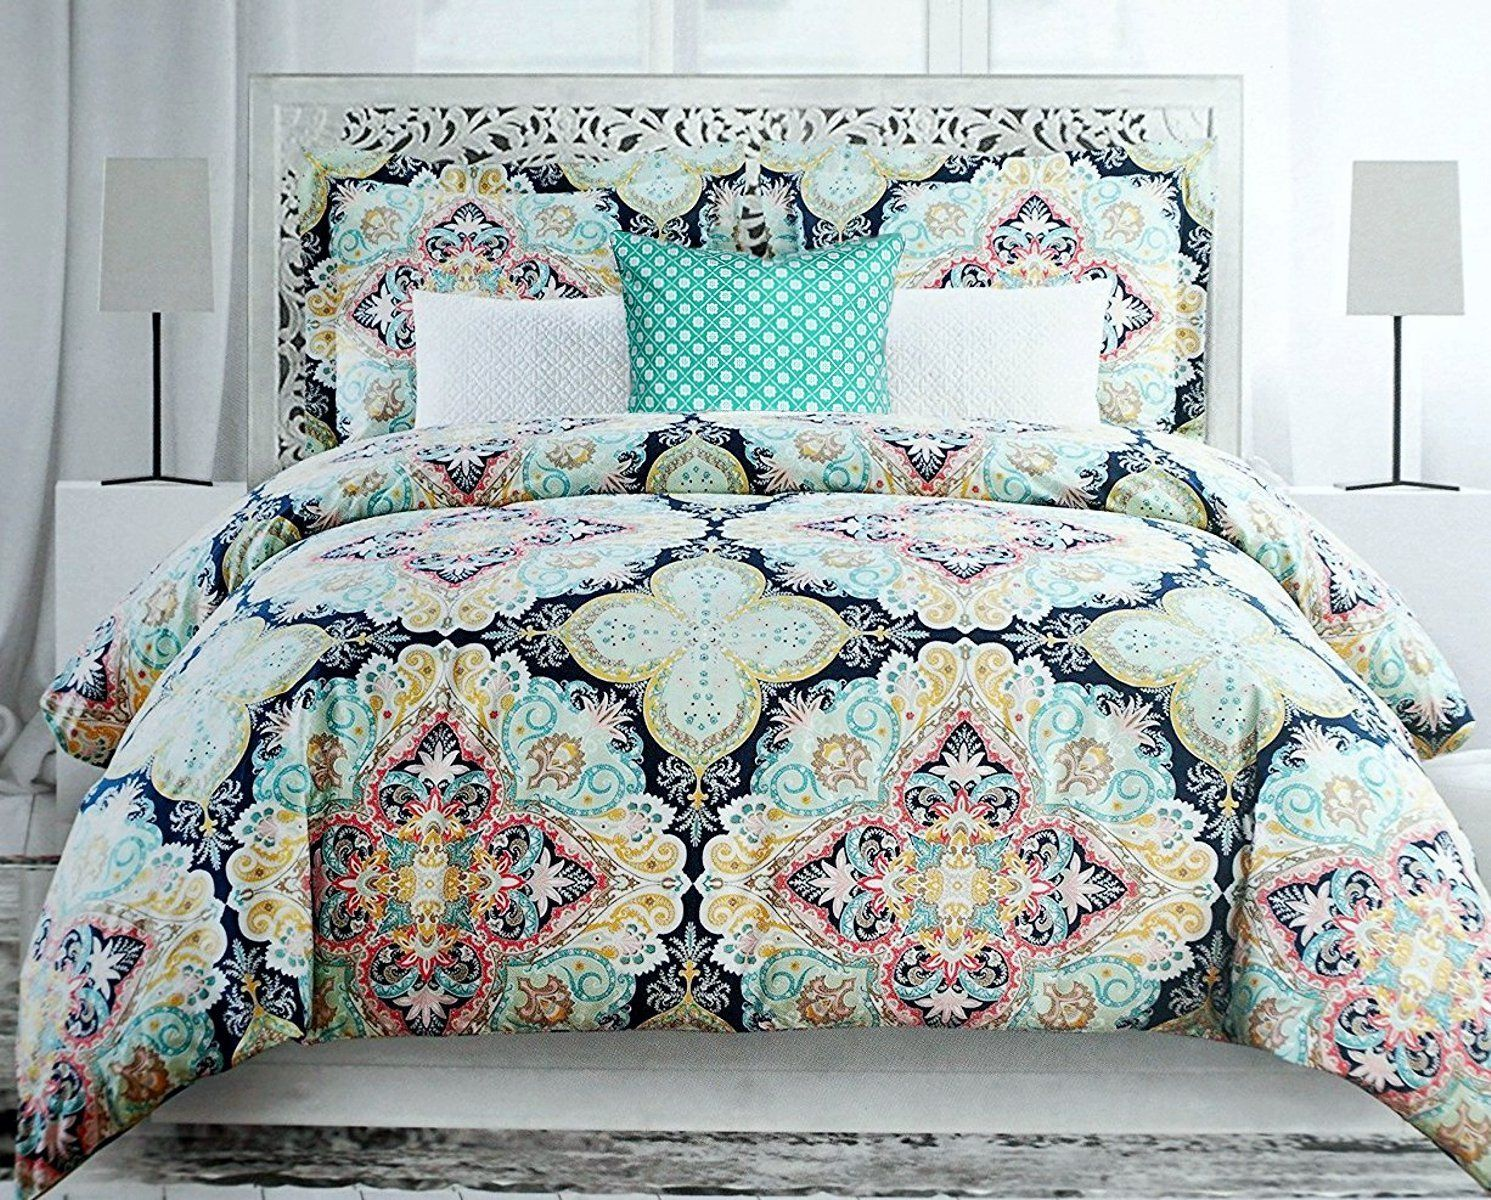 Boho Chic Bedding Sets with More | Master Bedroom Ideas ...